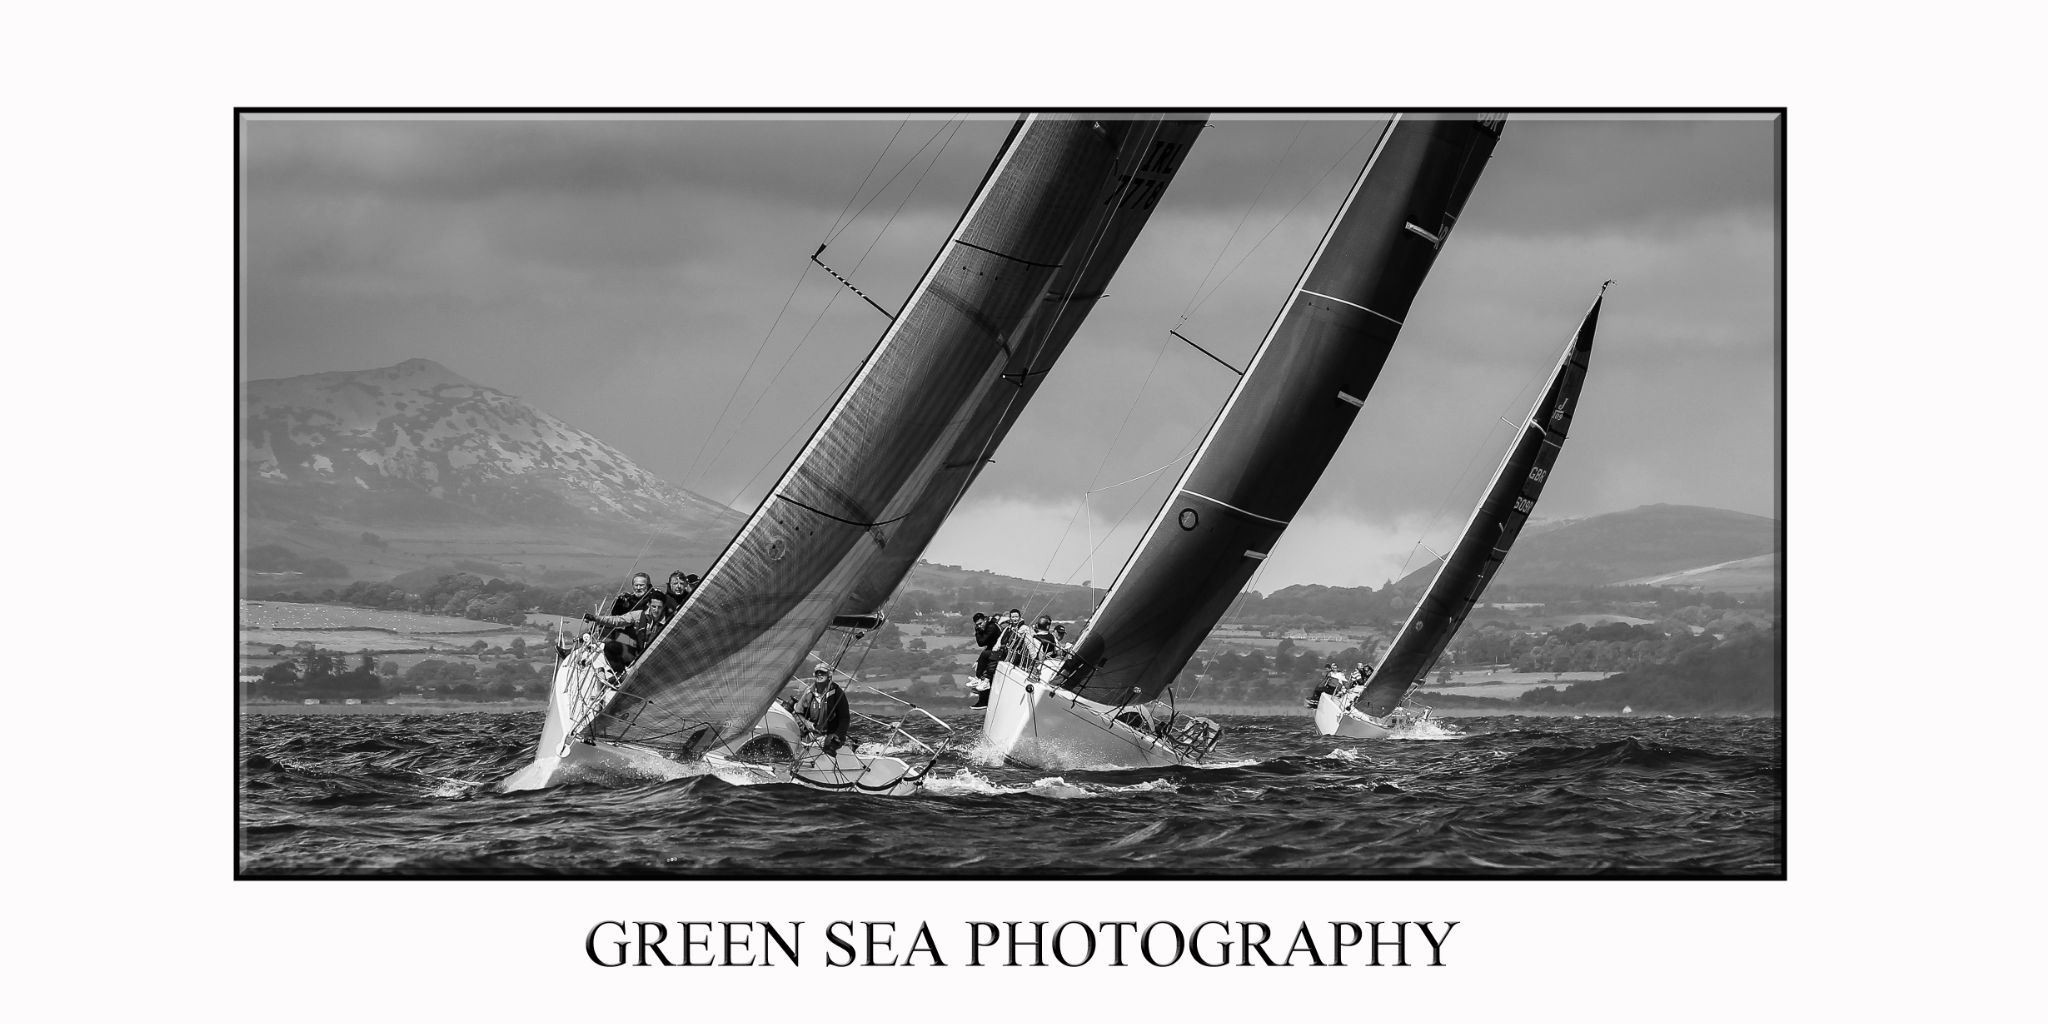 Sailing in three's by greensea